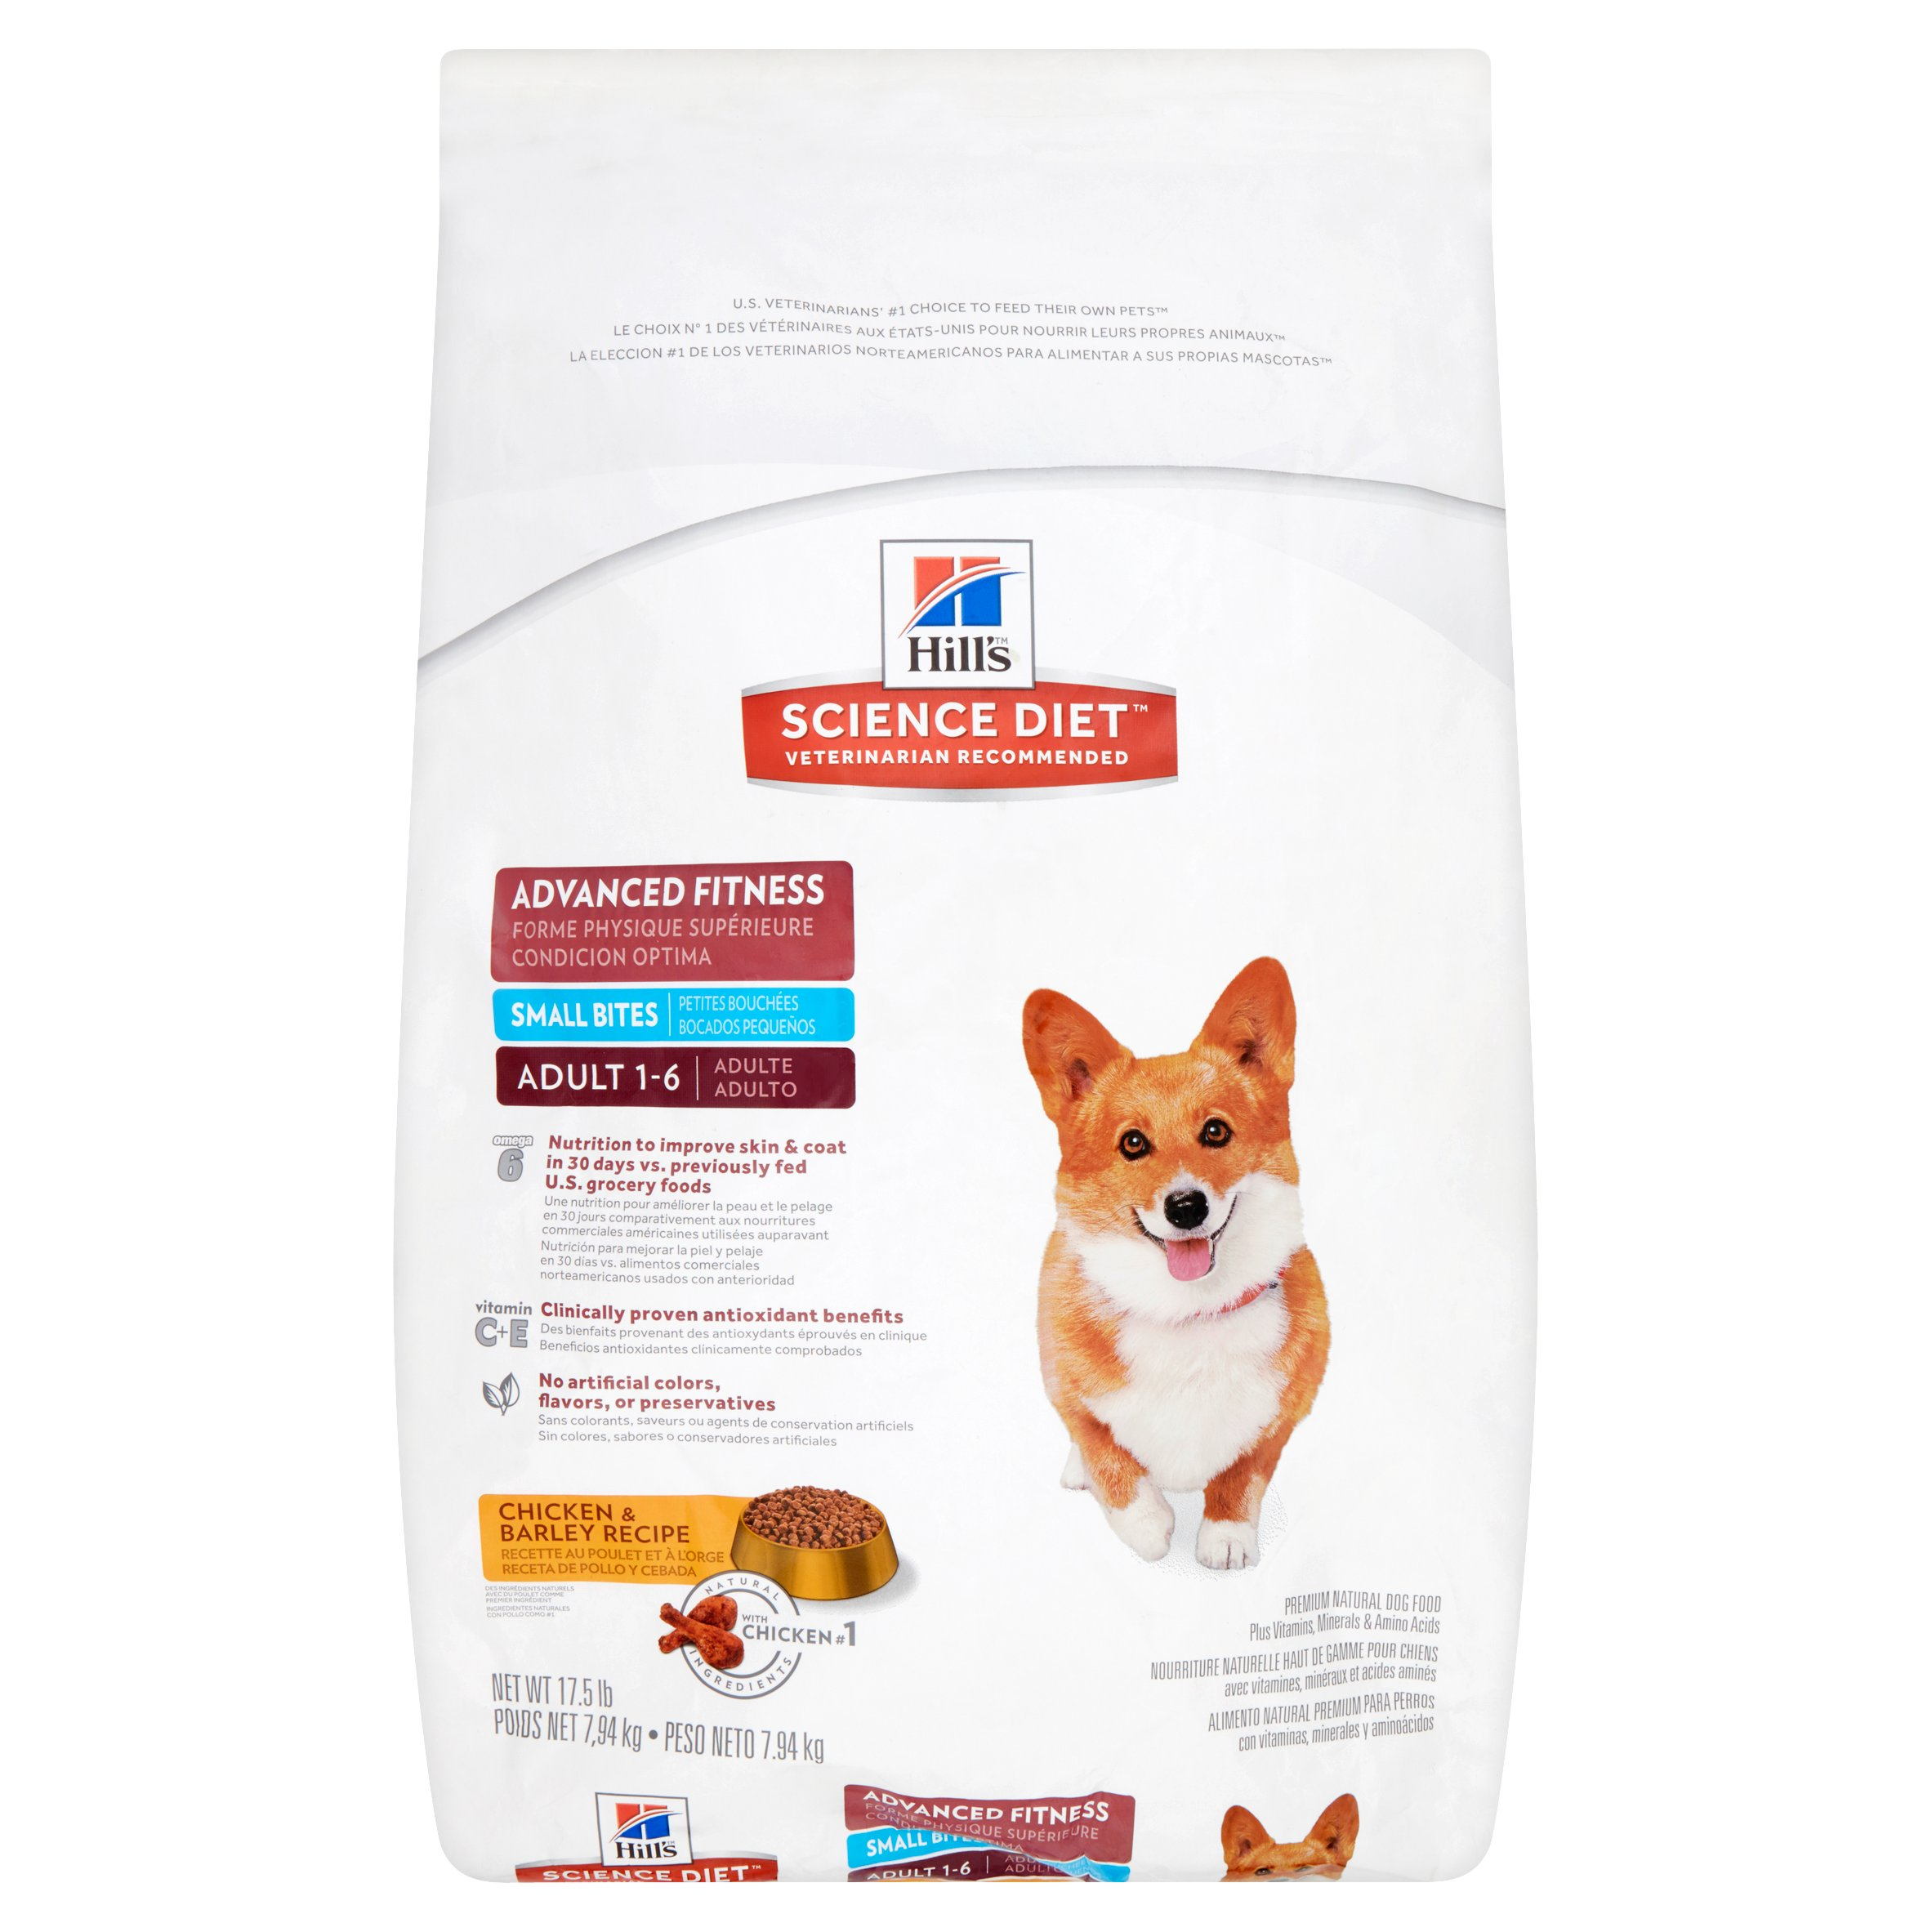 Hill's Science Diet Adult Advanced Fitness Small Bites Chicken & Barley Recipe Dry Dog Food, 17.5 lb bag by Hill's Pet Nutrition, Inc.